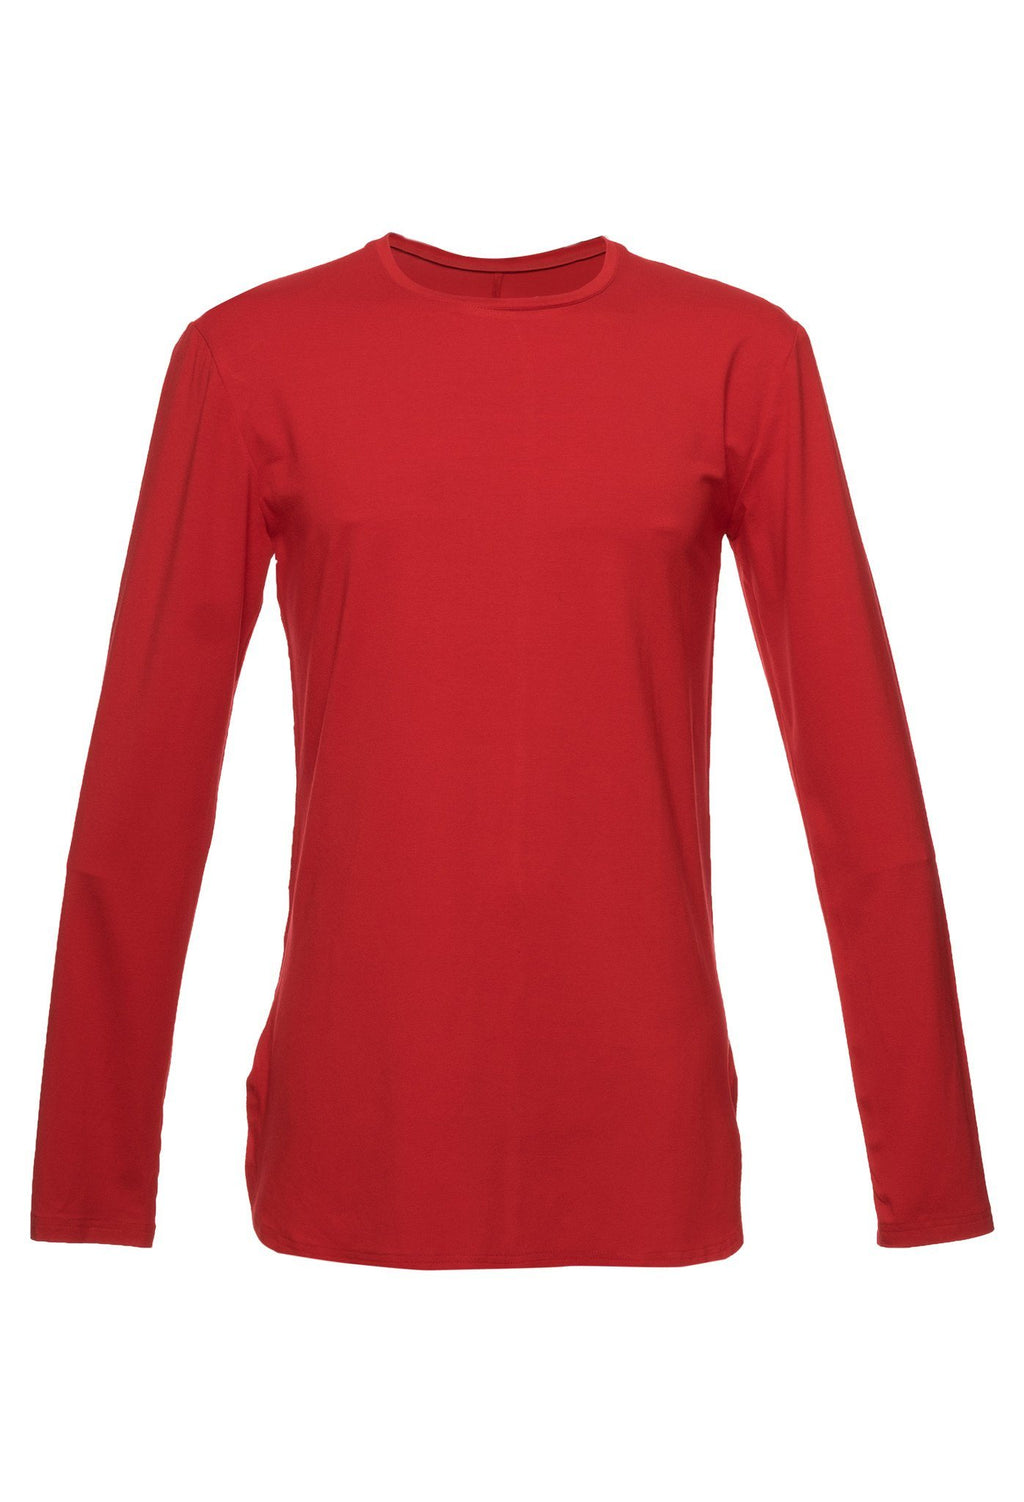 TheG viscose handmade designer under long tee red